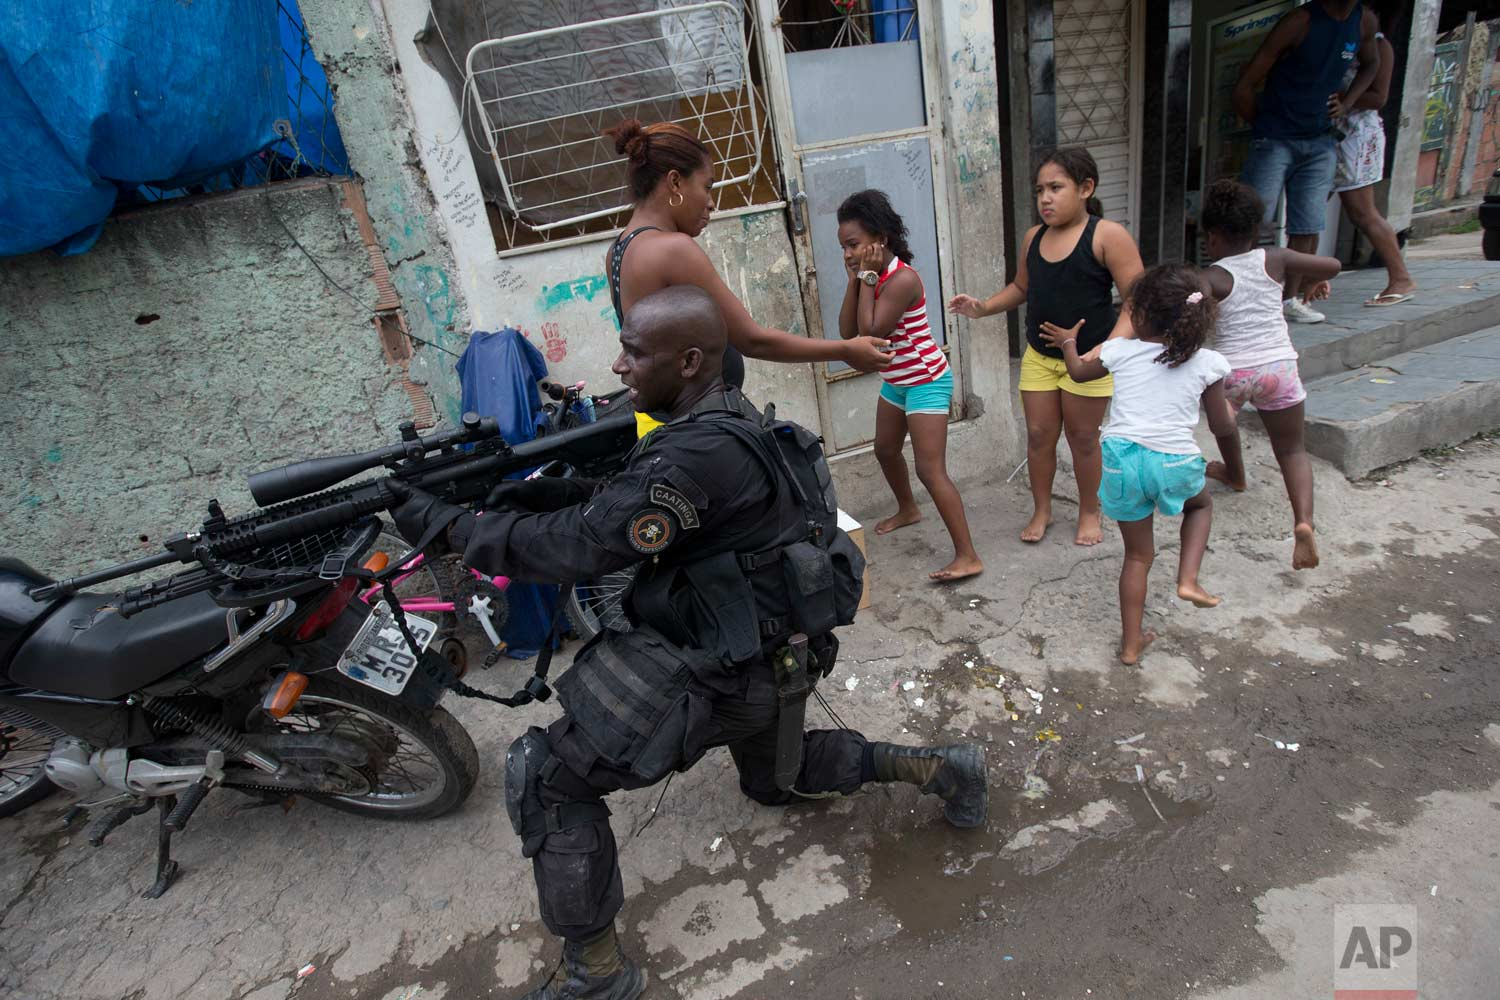 """In this March 26, 2014 photo, an officer with the Special Police Operations Battalion takes position while residents run for cover during an operation in the Mare slum complex, ahead of its """"pacification"""" security program, in Rio de Janeiro, Brazil. At the time the city had two global showcase events on the horizon that were incentives to make the program work: the 2014 World Cup in Brazil and the 2016 Rio Summer Olympics. (AP Photo/Silvia Izquierdo)"""